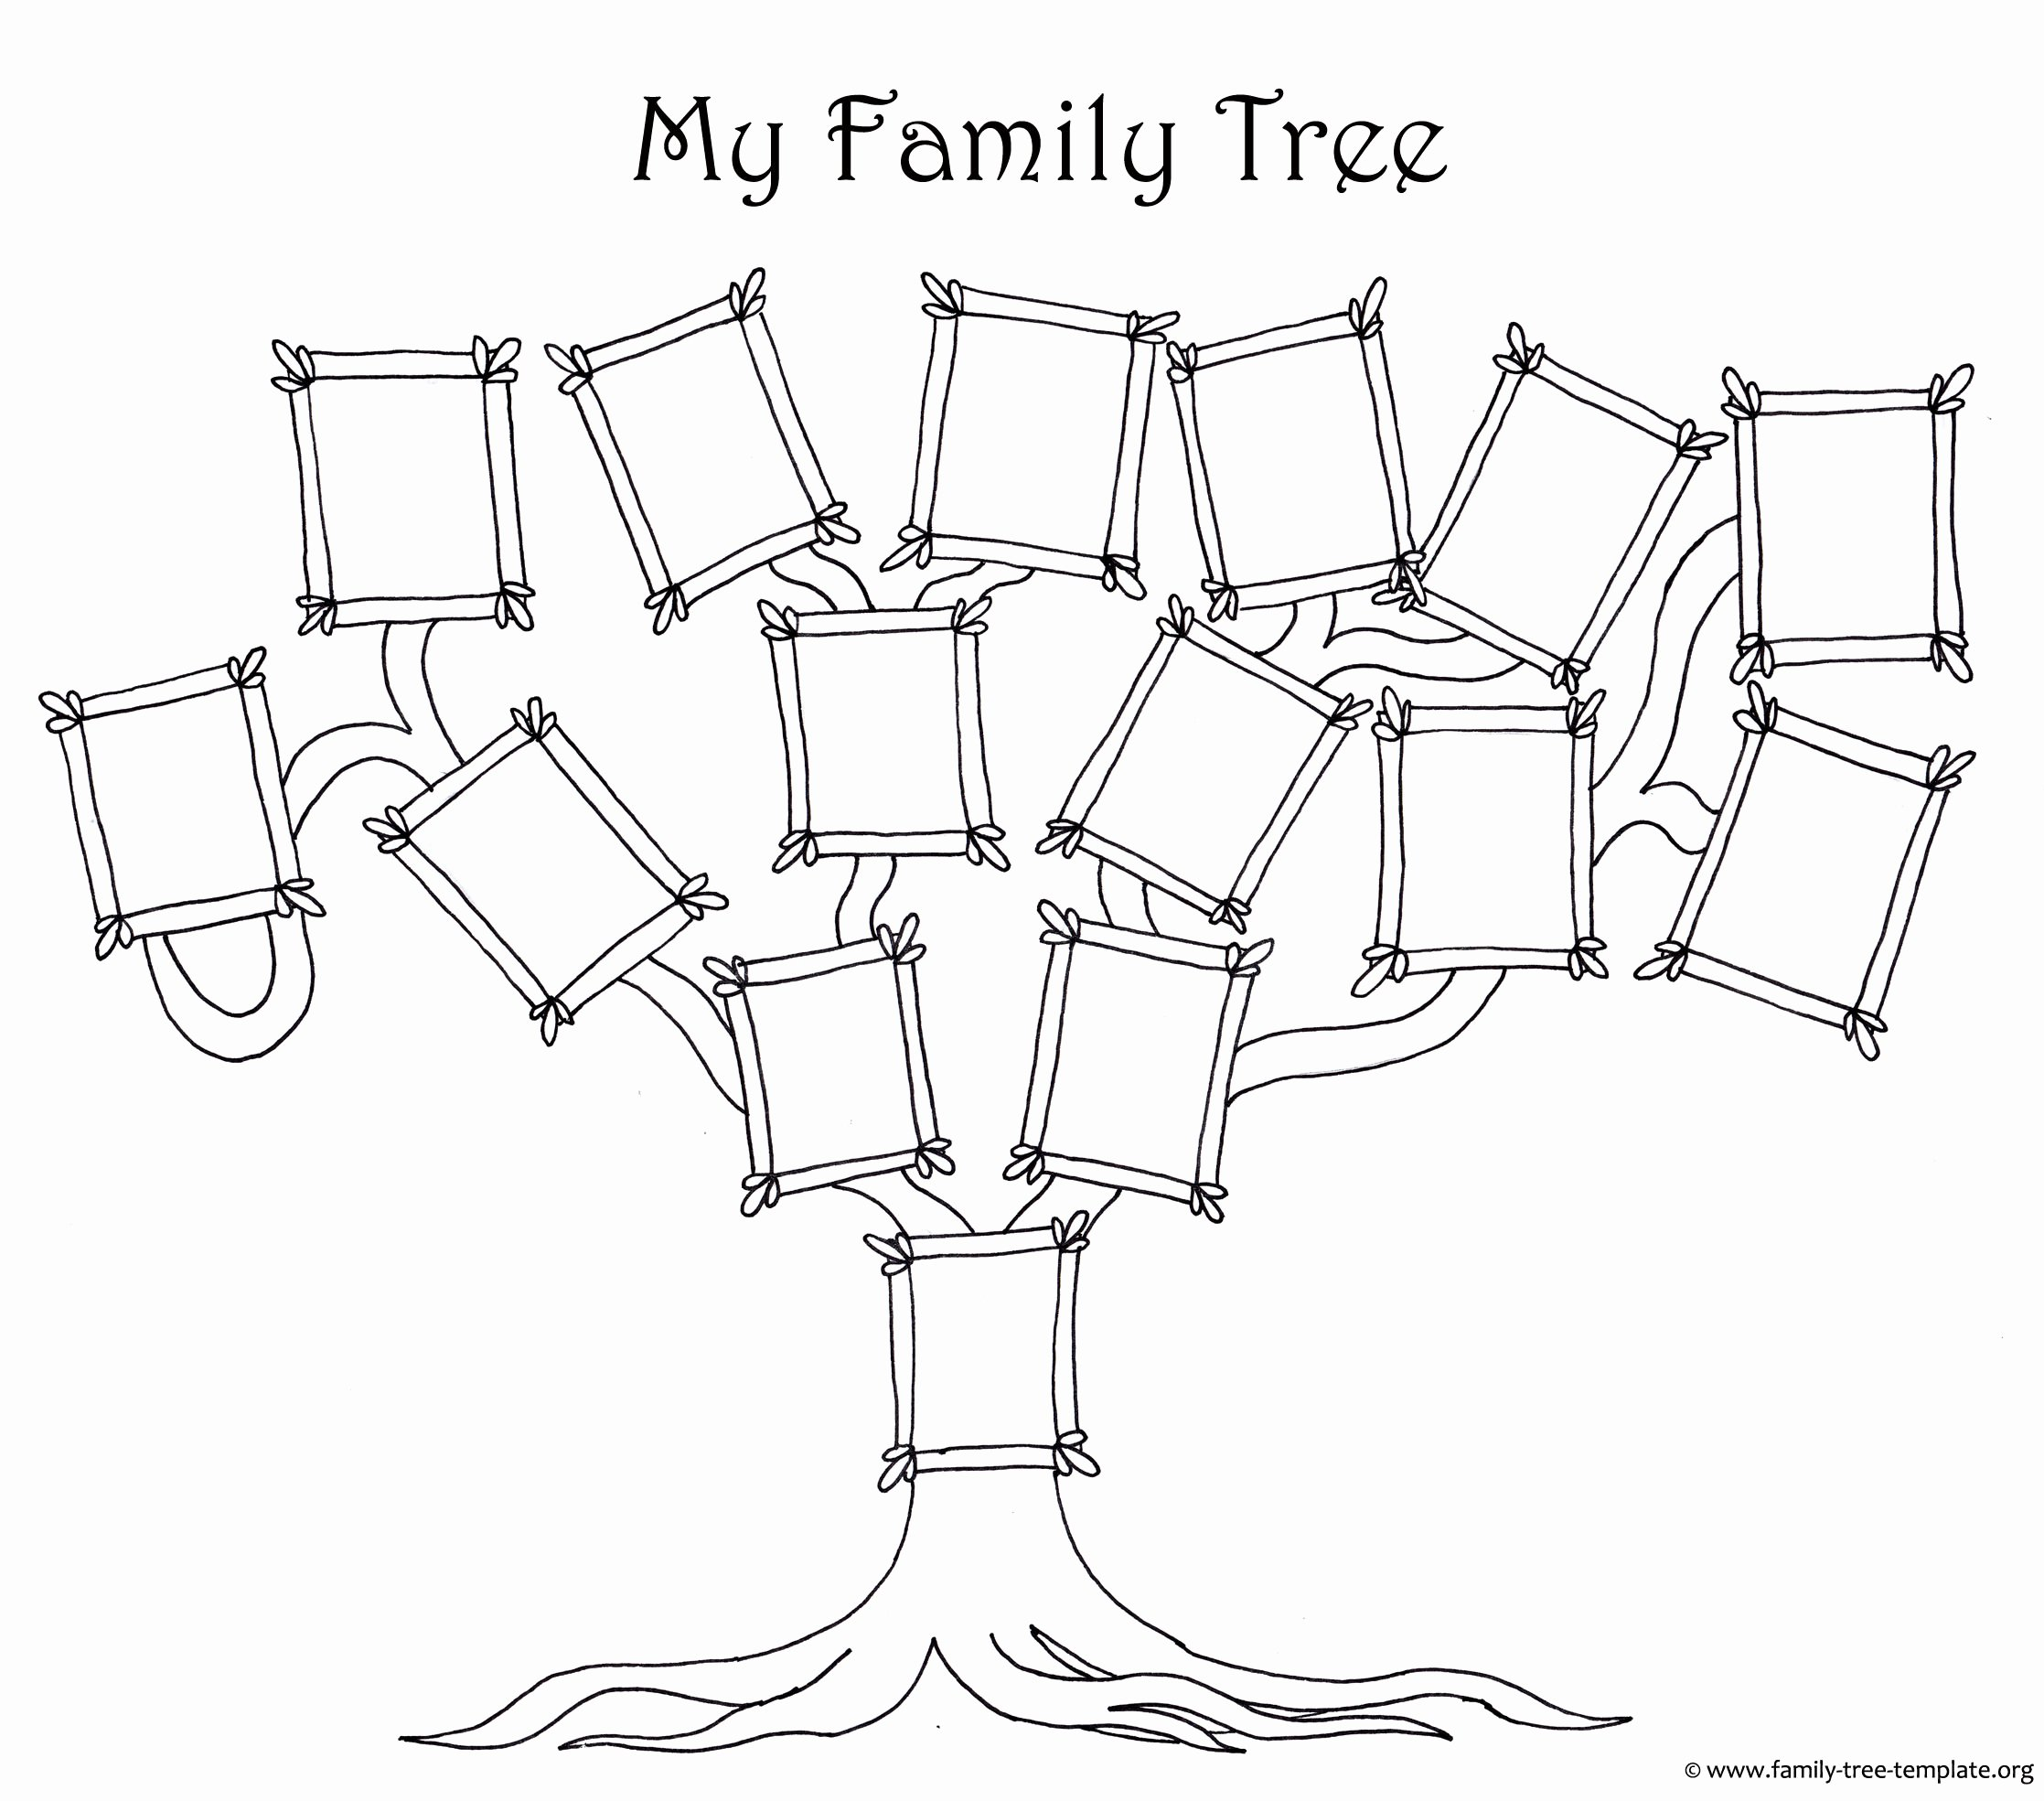 Blank Family Tree Chart Best Of Free Family Tree Template Designs for Making Ancestry Charts